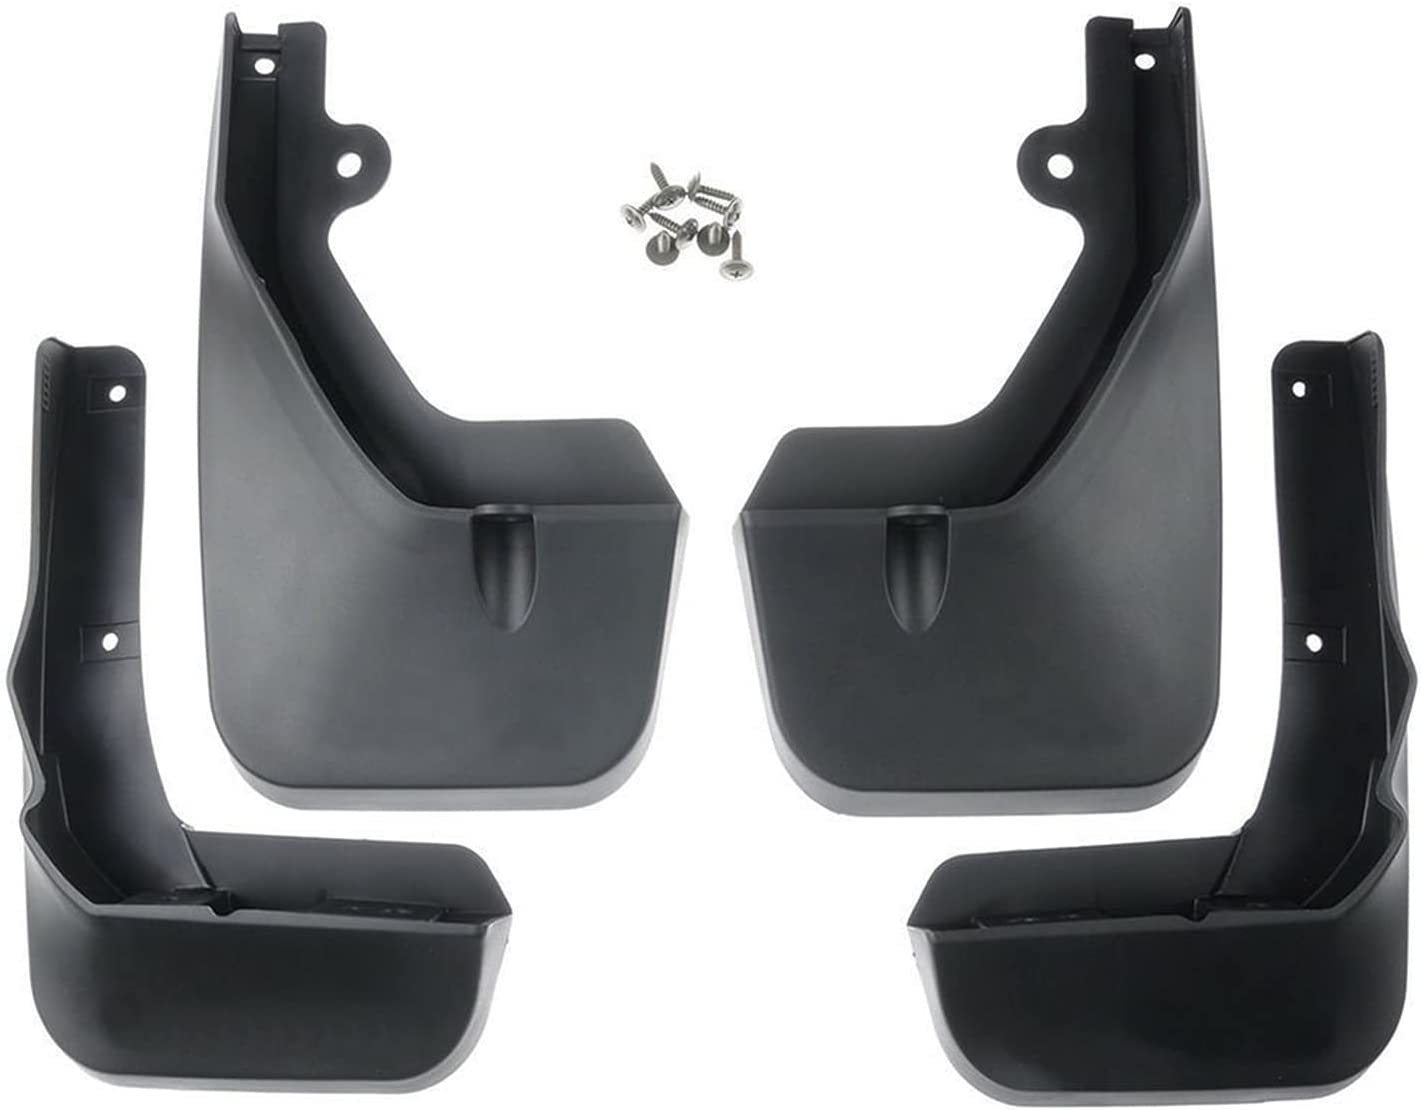 Colorado Springs Mall HJCS 4pcs Manufacturer regenerated product Mud Flaps Guards for RX Lexus RX200T RX350 RX450h